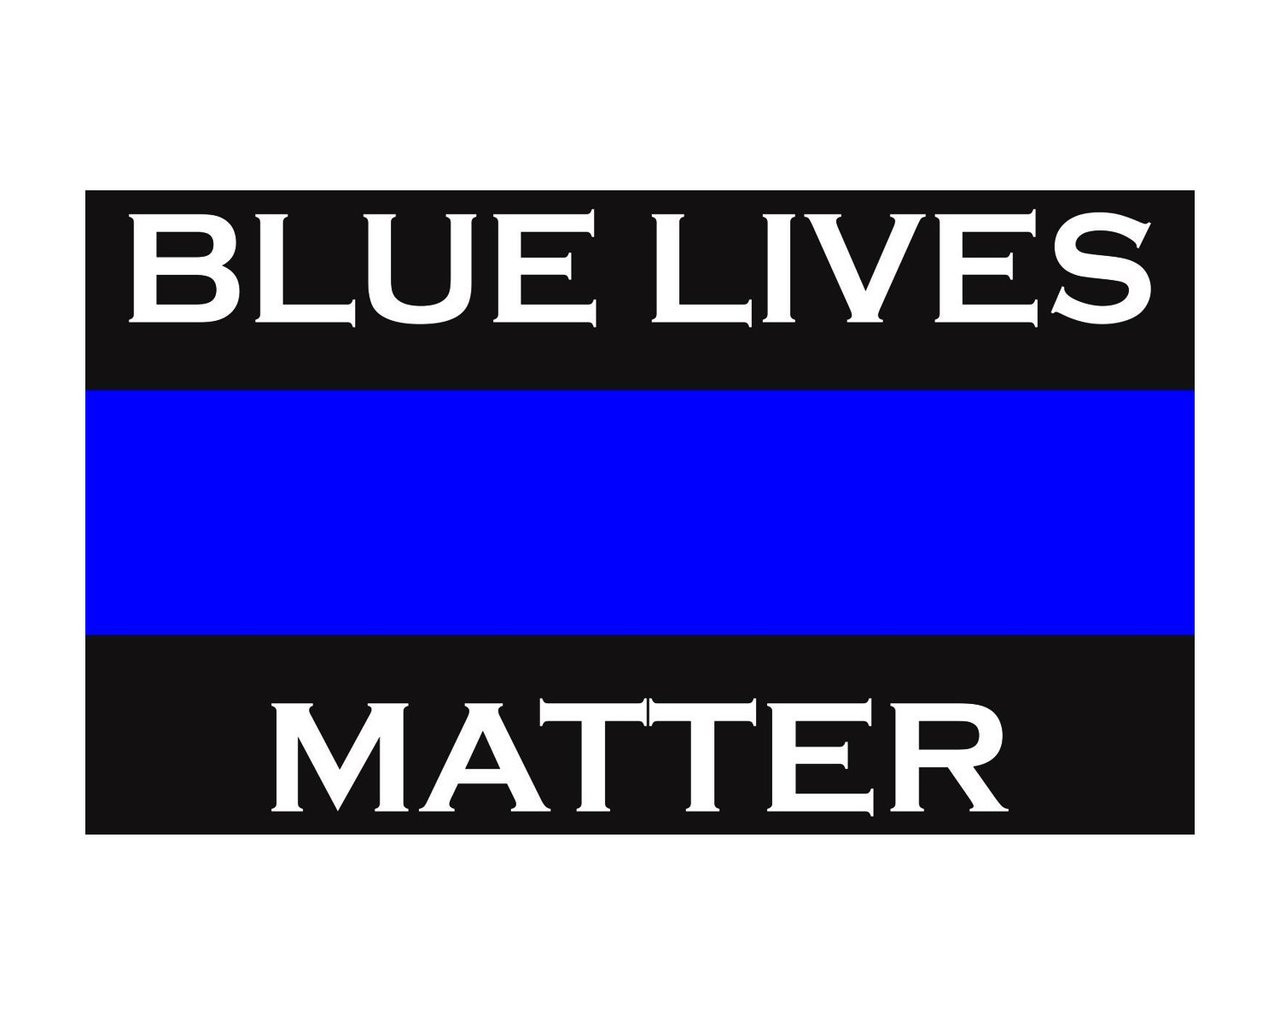 Blue Lives Matter Thin Blue Line Police Support Vinyl Decal Sticker 3x5 For Cars Trucks Laptops Etc